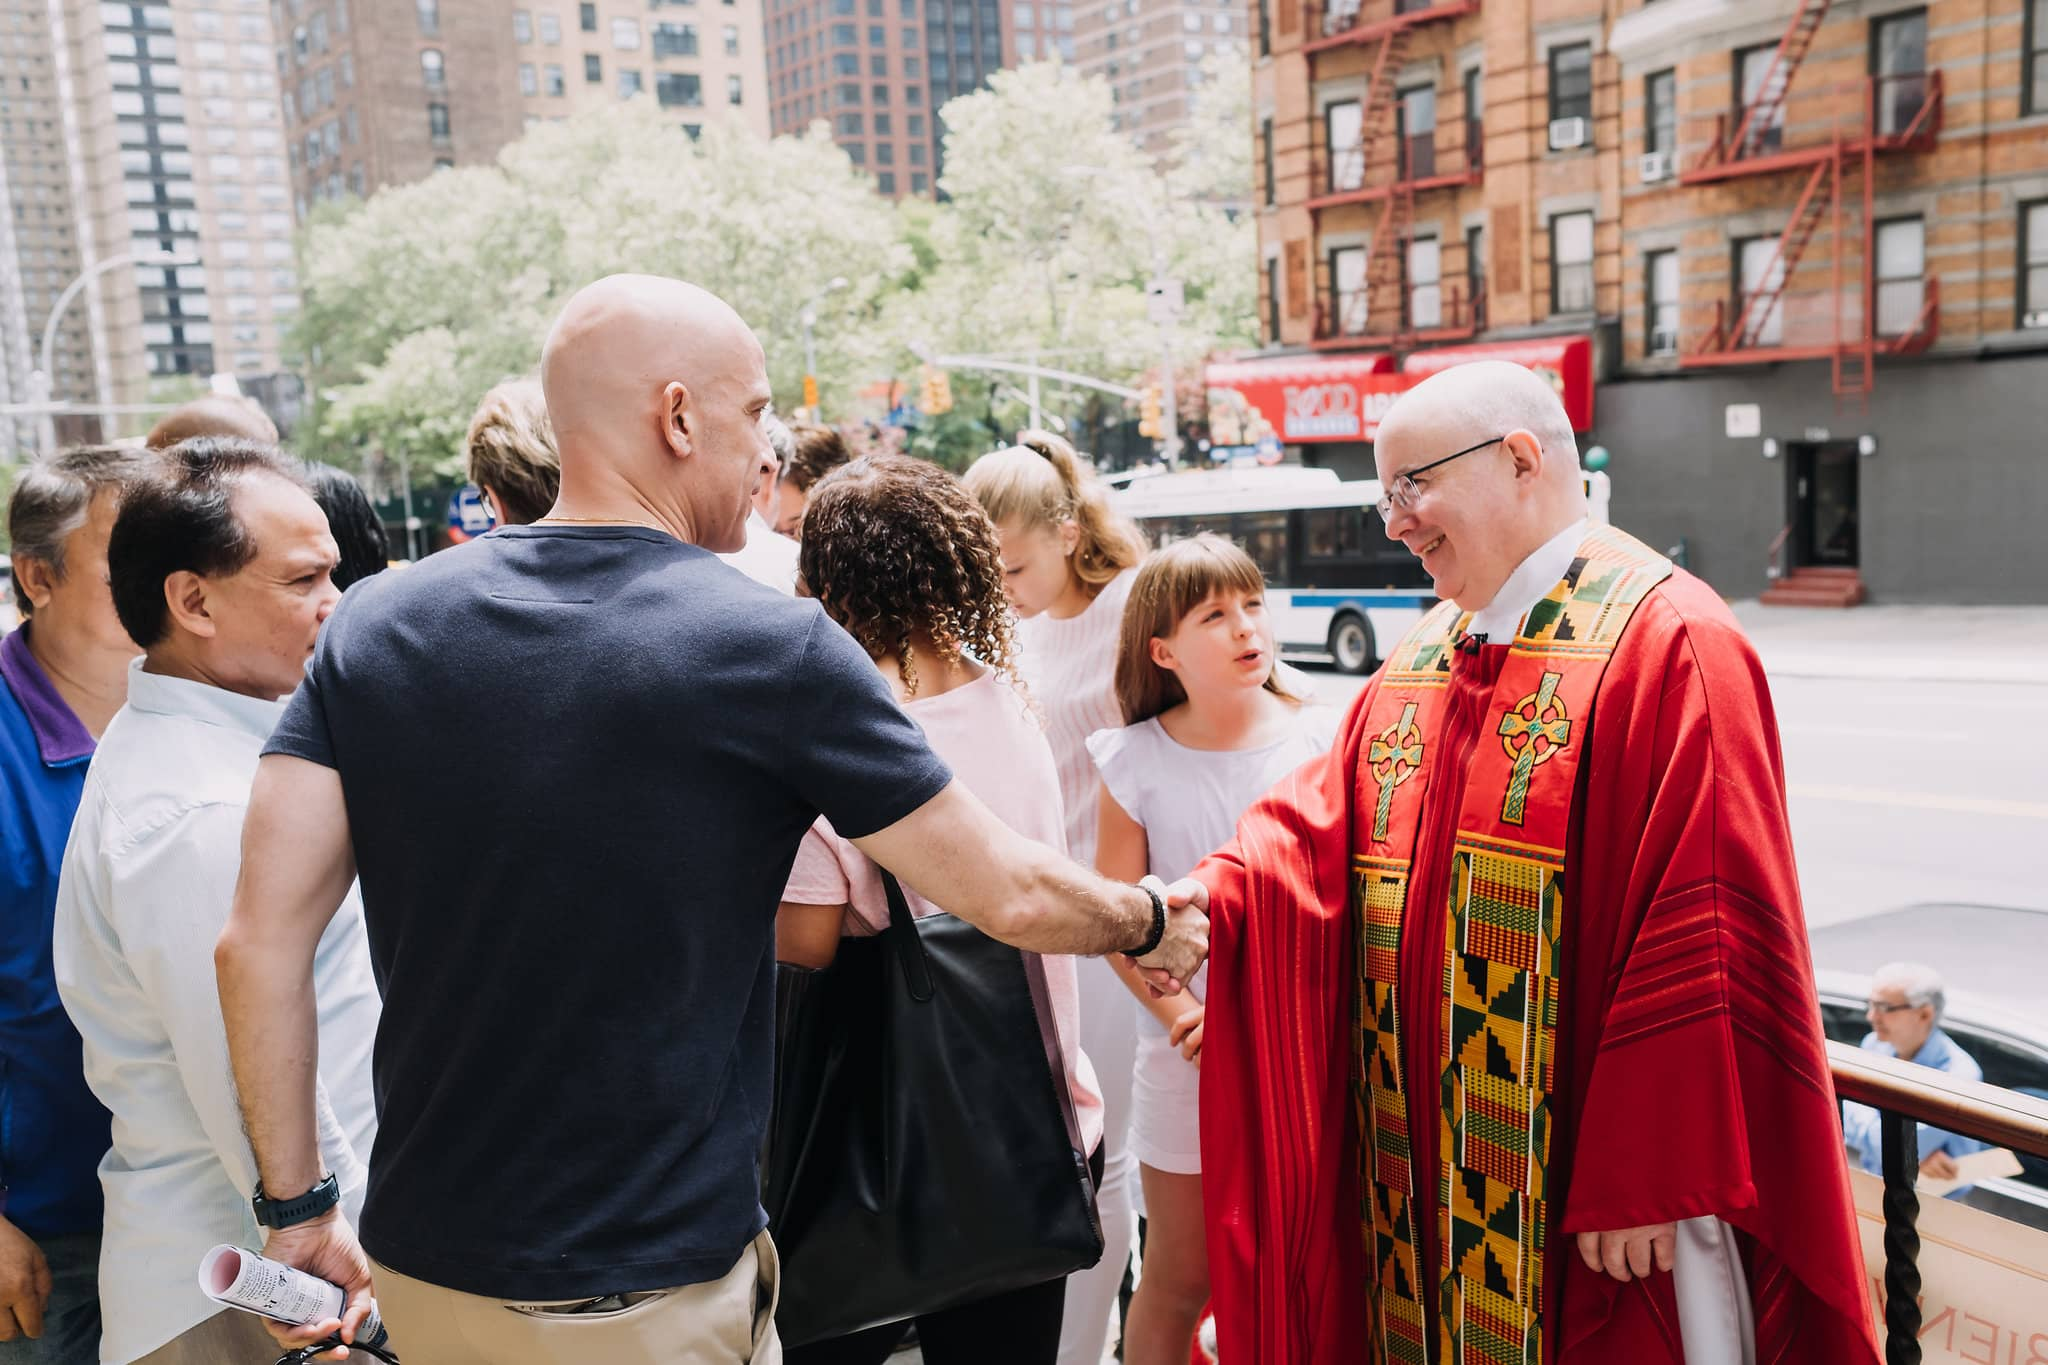 handshake-greeting-outside-mass-st-francis-de-sales-church-new-york-city.jpg